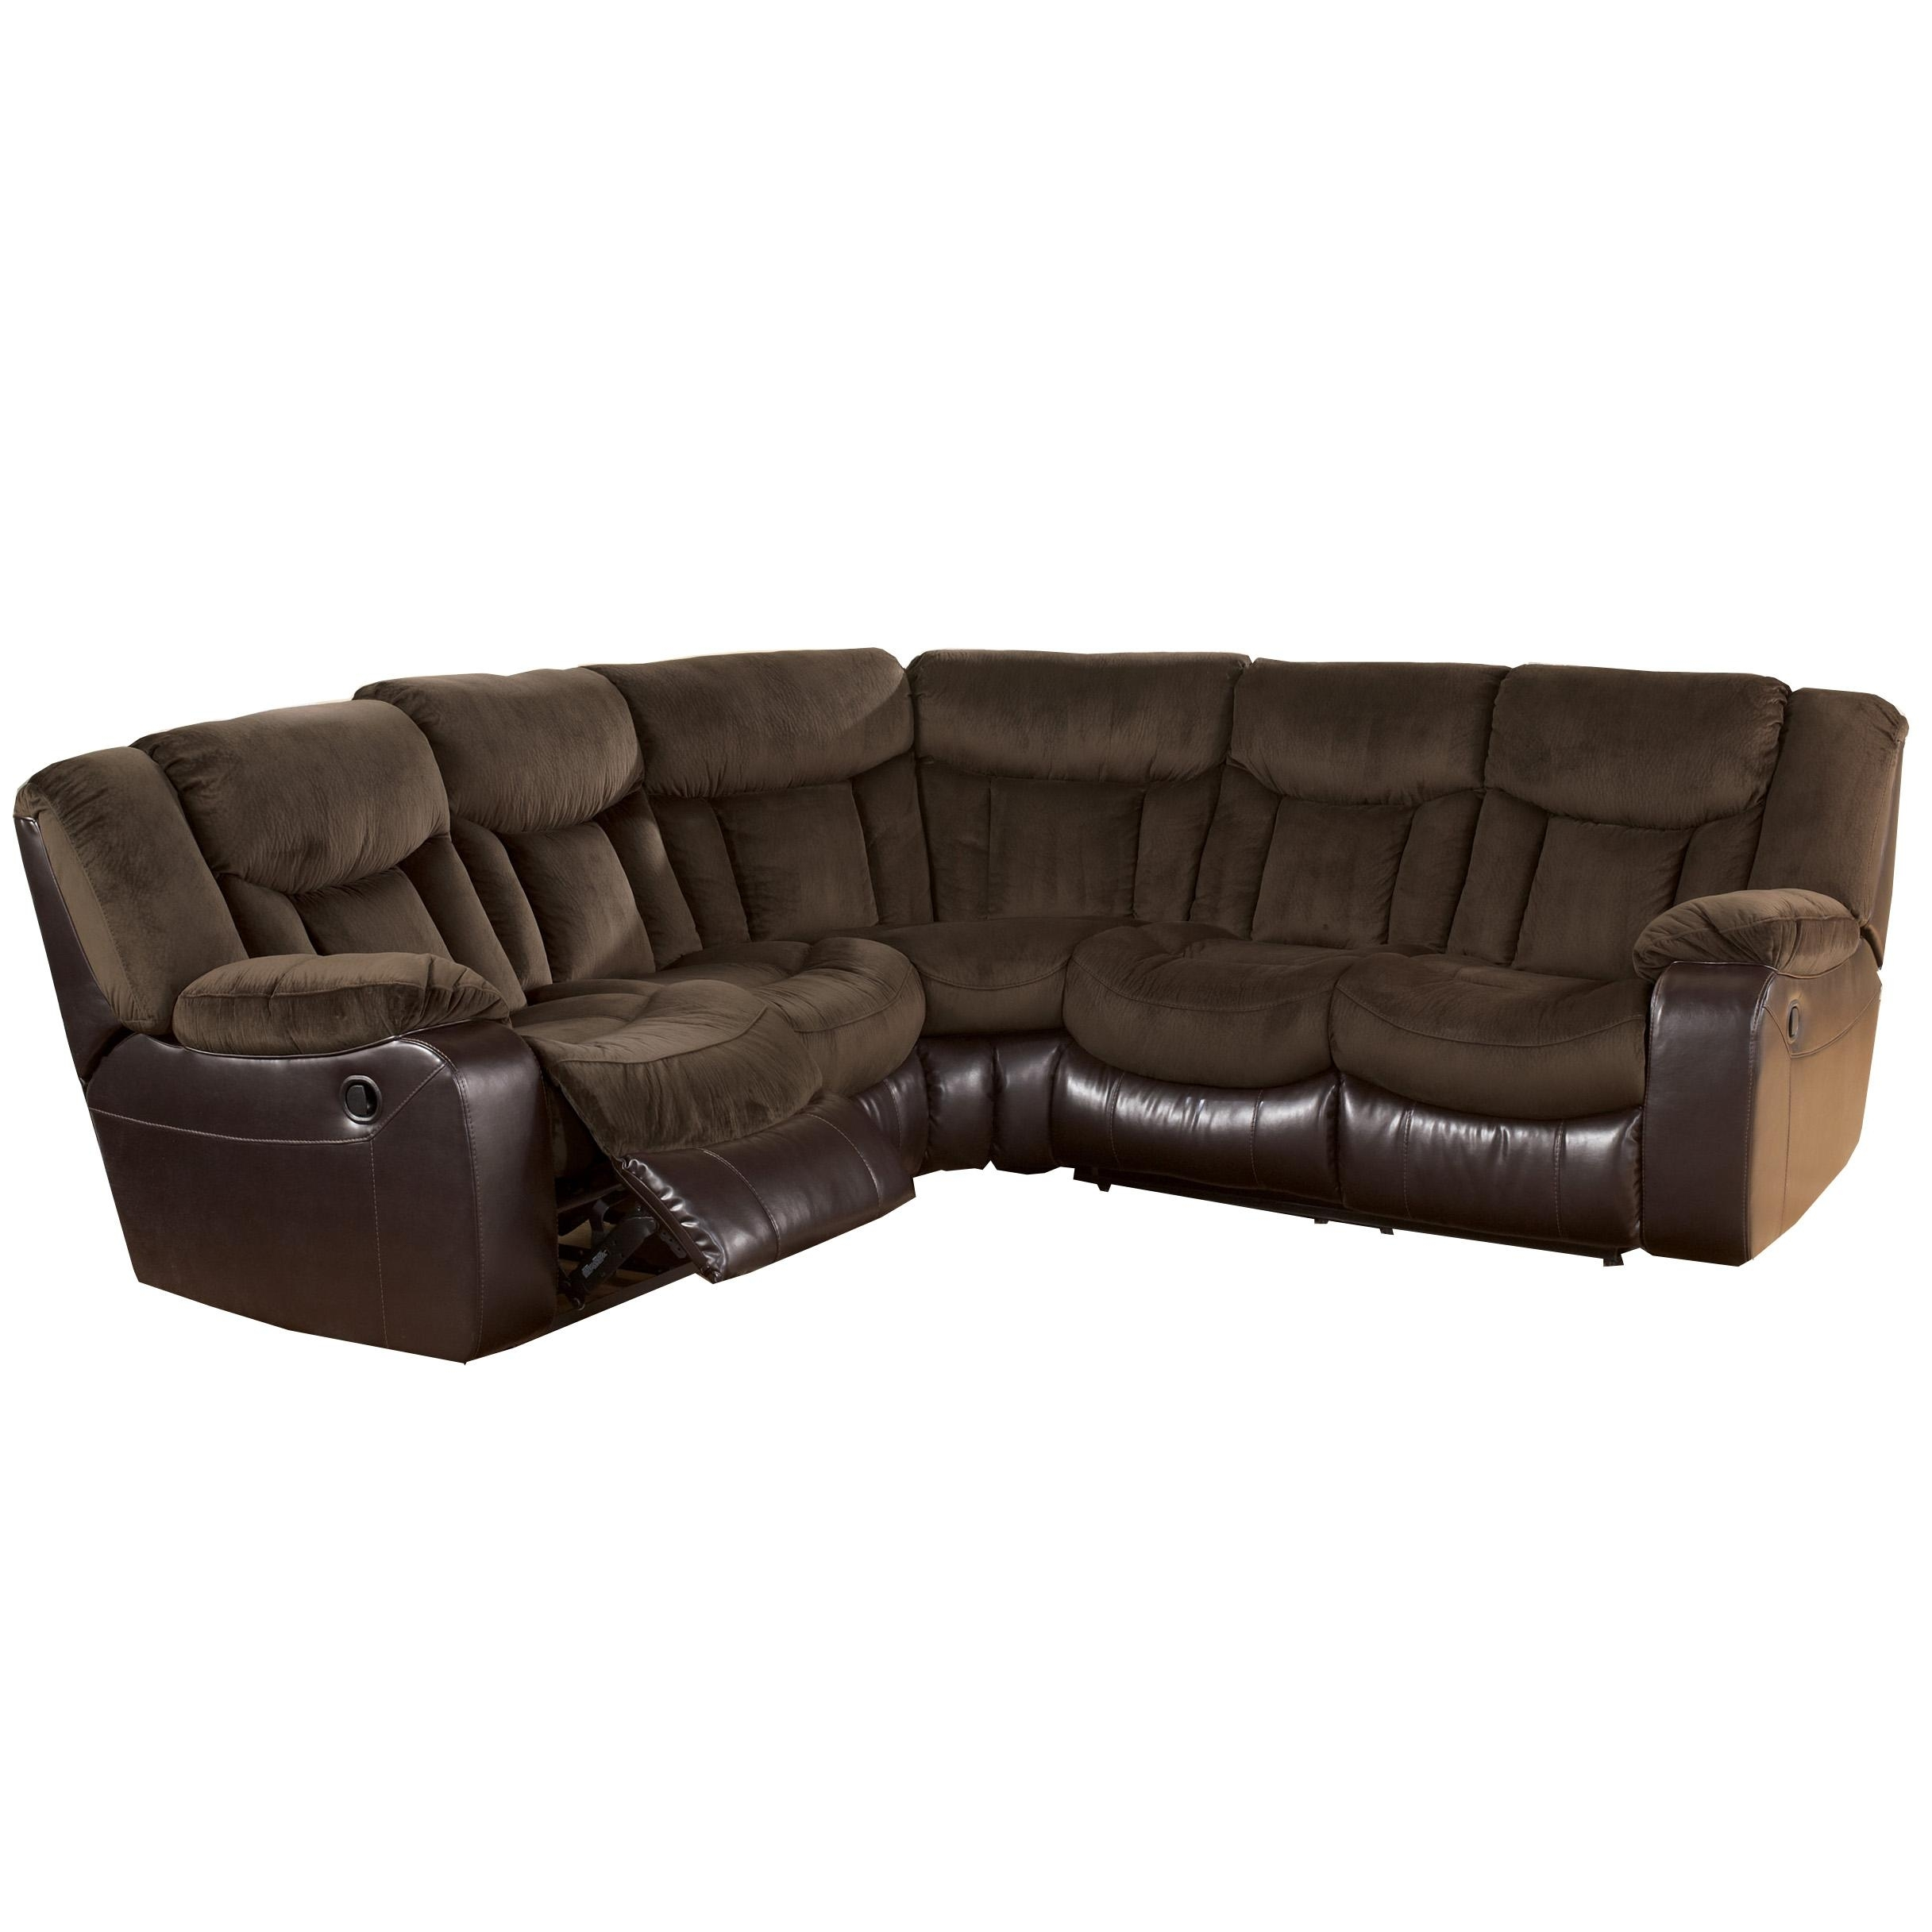 Tafton – Java Double Reclining Two Loveseat Sectionalsignature For Homemakers Sectional Sofas (View 10 of 10)